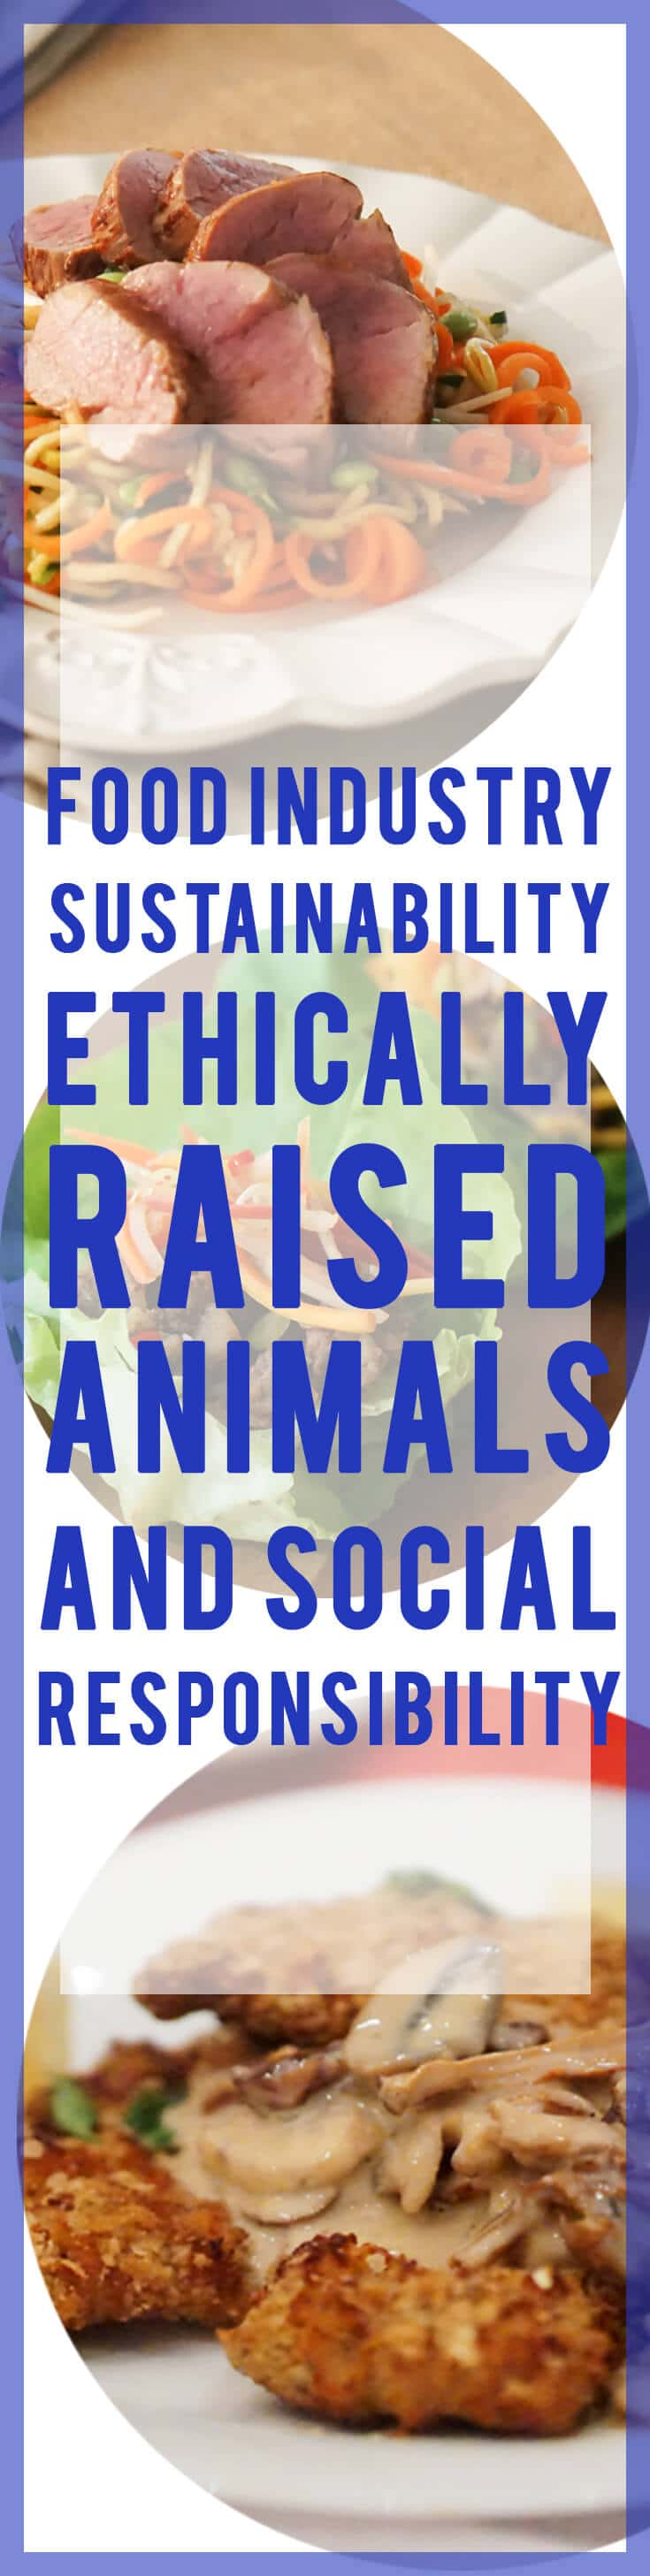 Food Industry Sustainability, Ethically Raised Animals and Social Responsibility